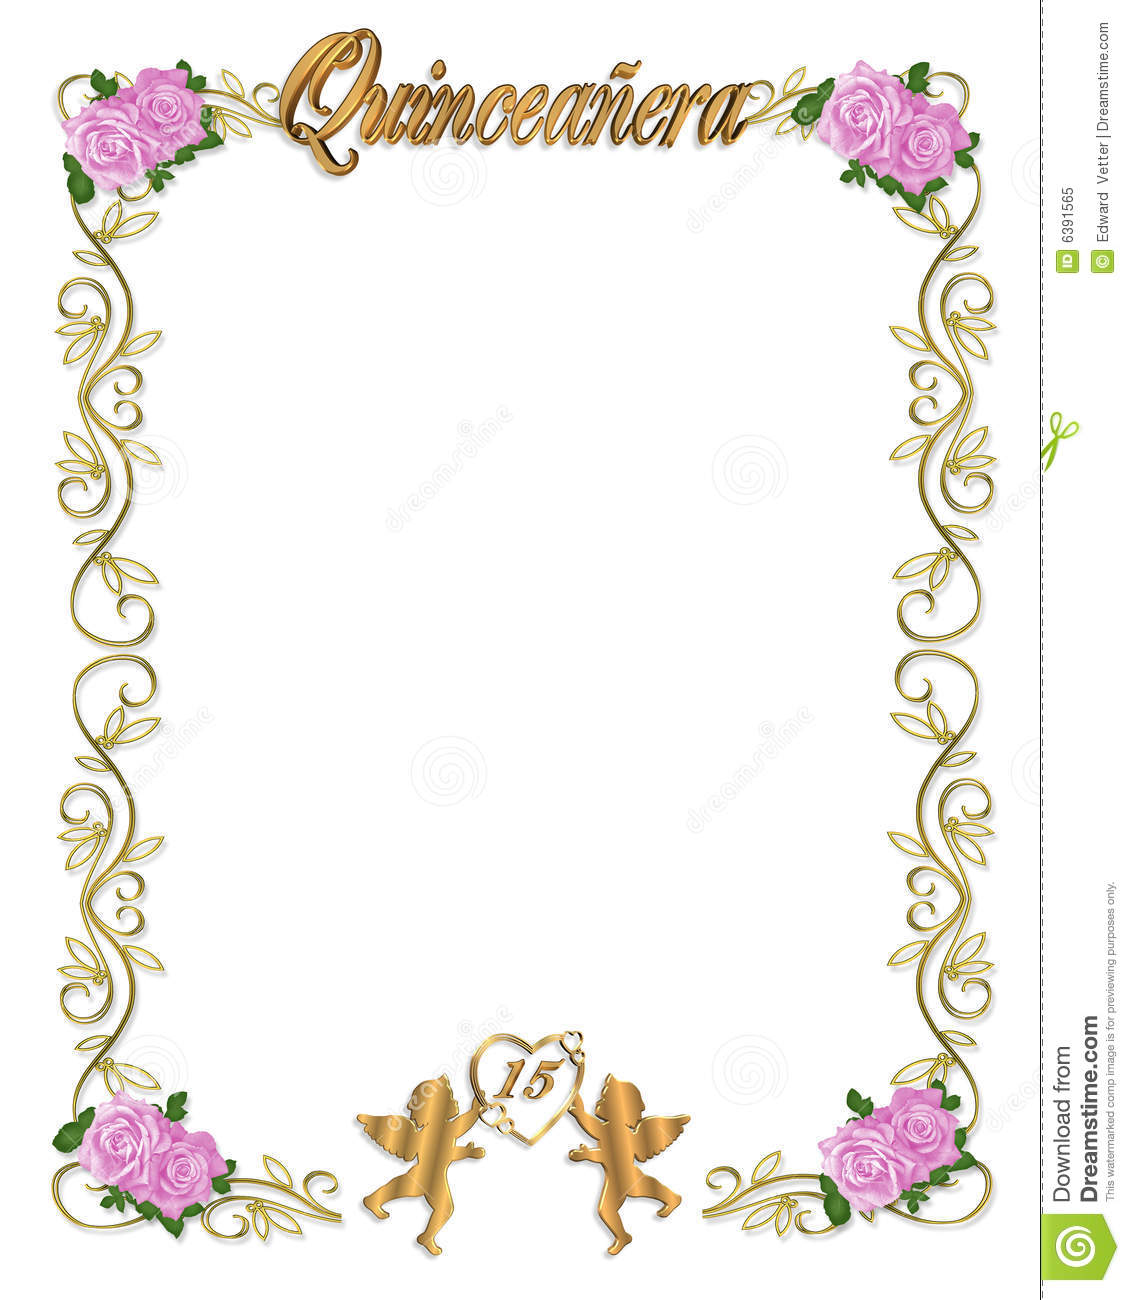 Quinceanera Invitation 15th Birthday Party Royalty Free Stock ...